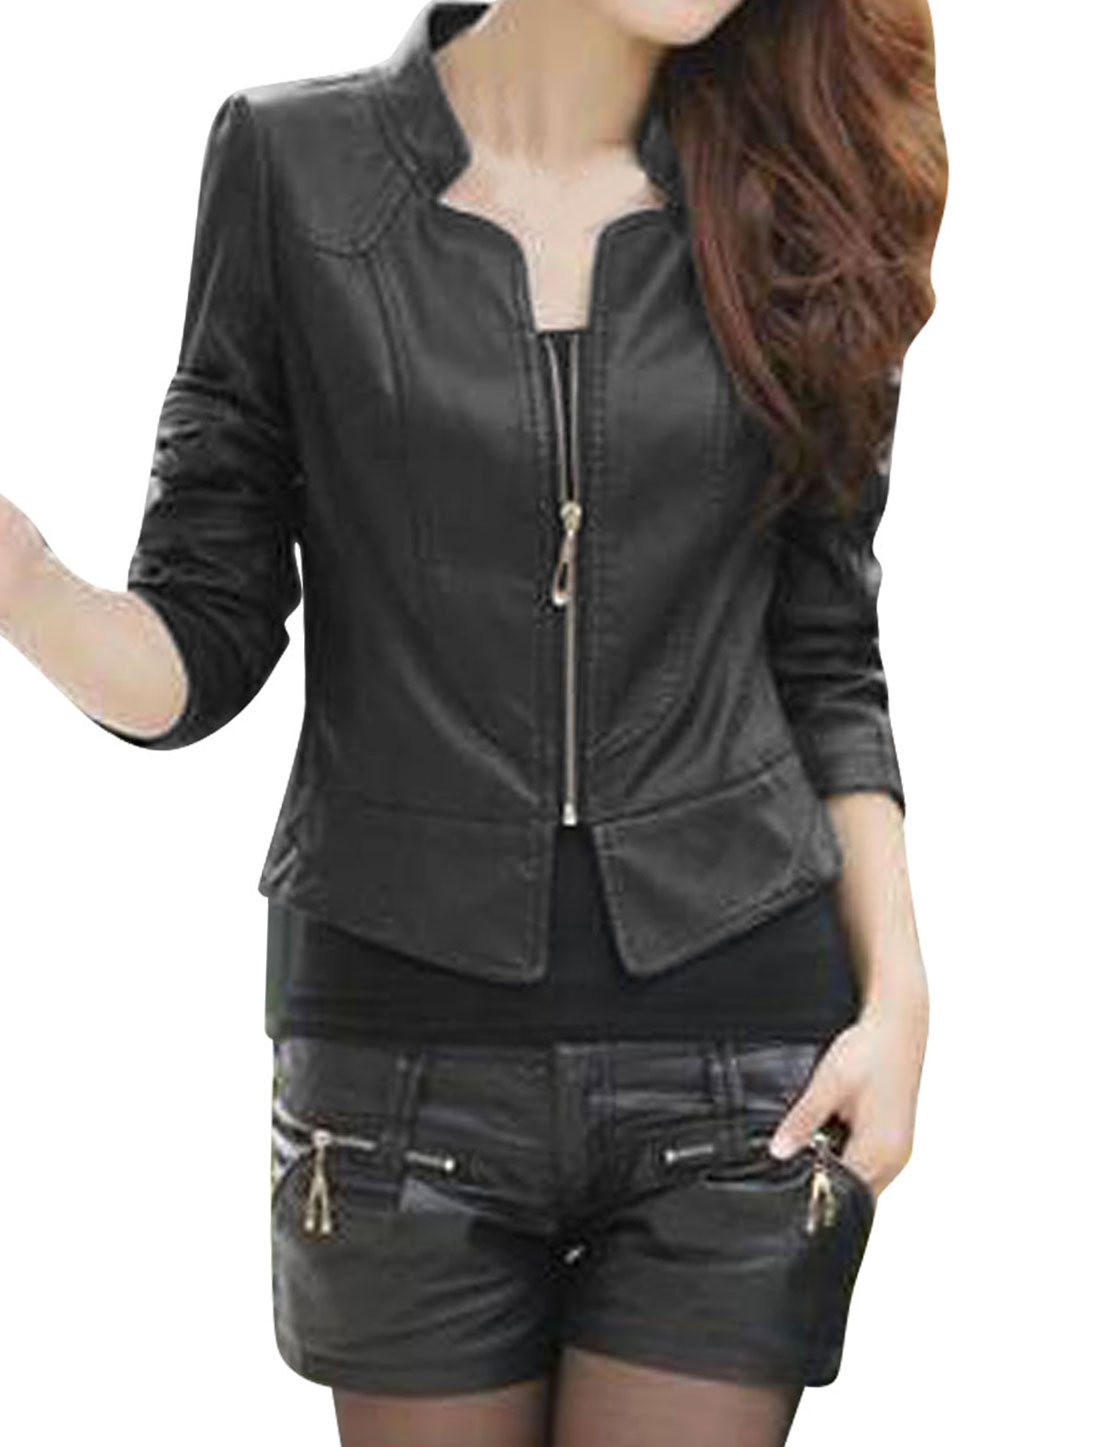 Ladies Black Stand Collar Long Sleeves Zip Up Casual Jacket M